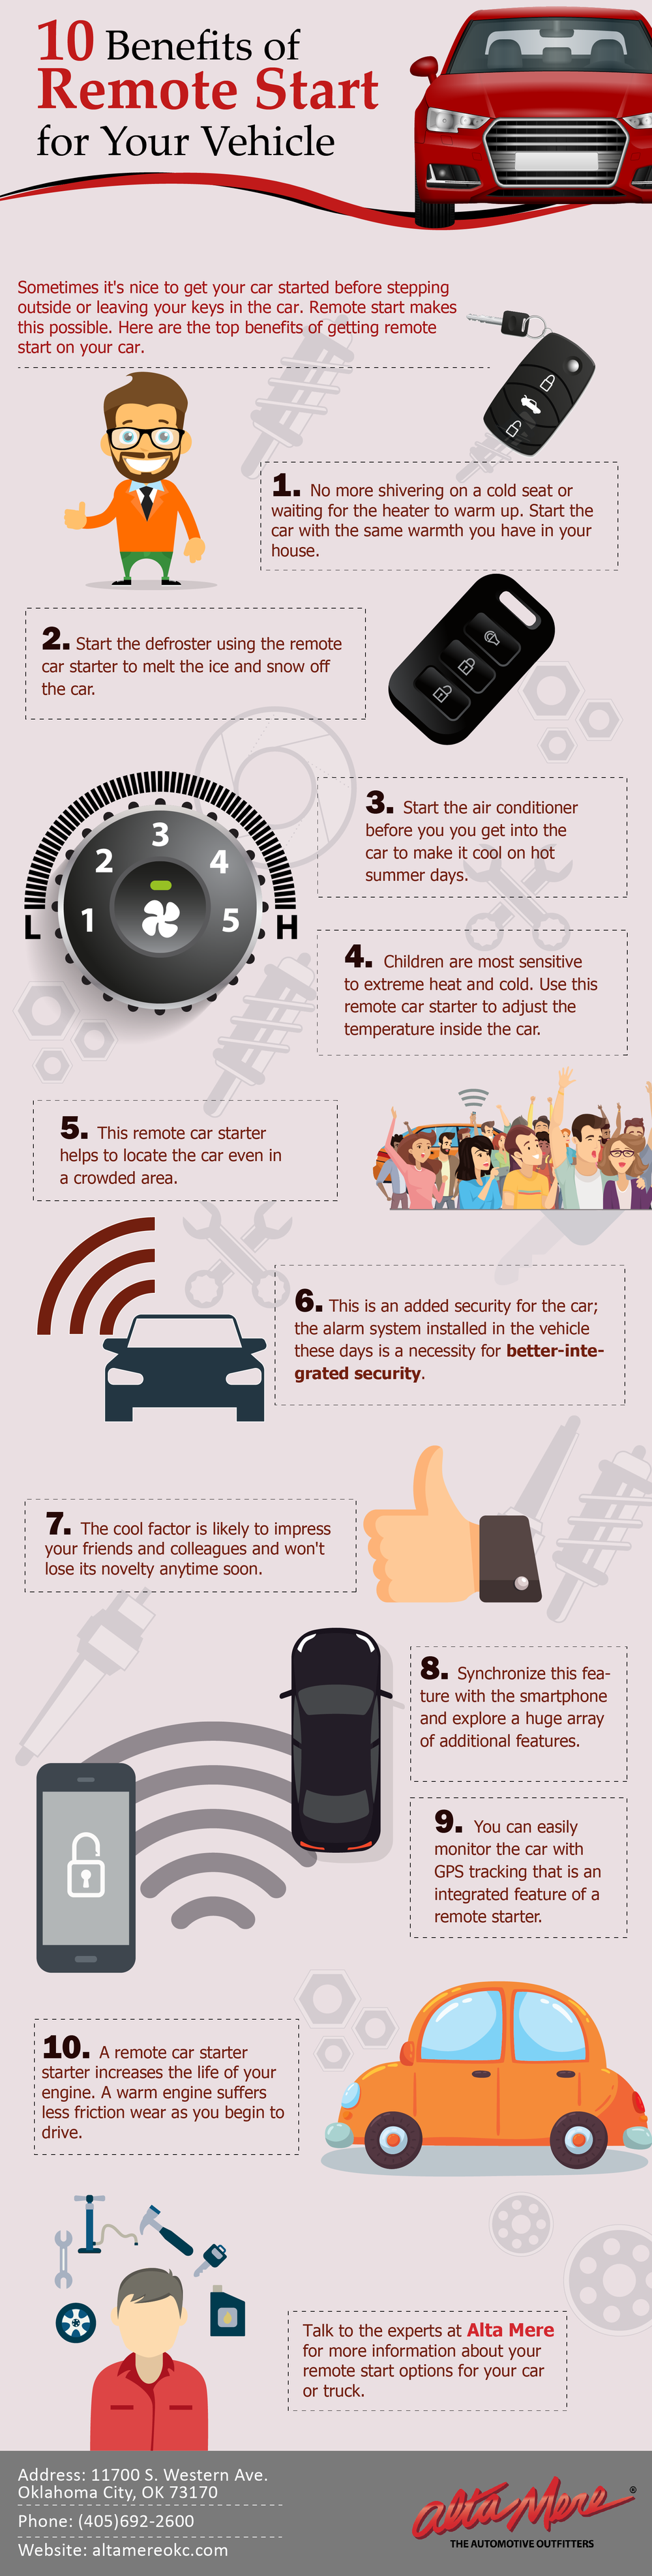 10 Benefits of Remote Start for Your Vehicle.png